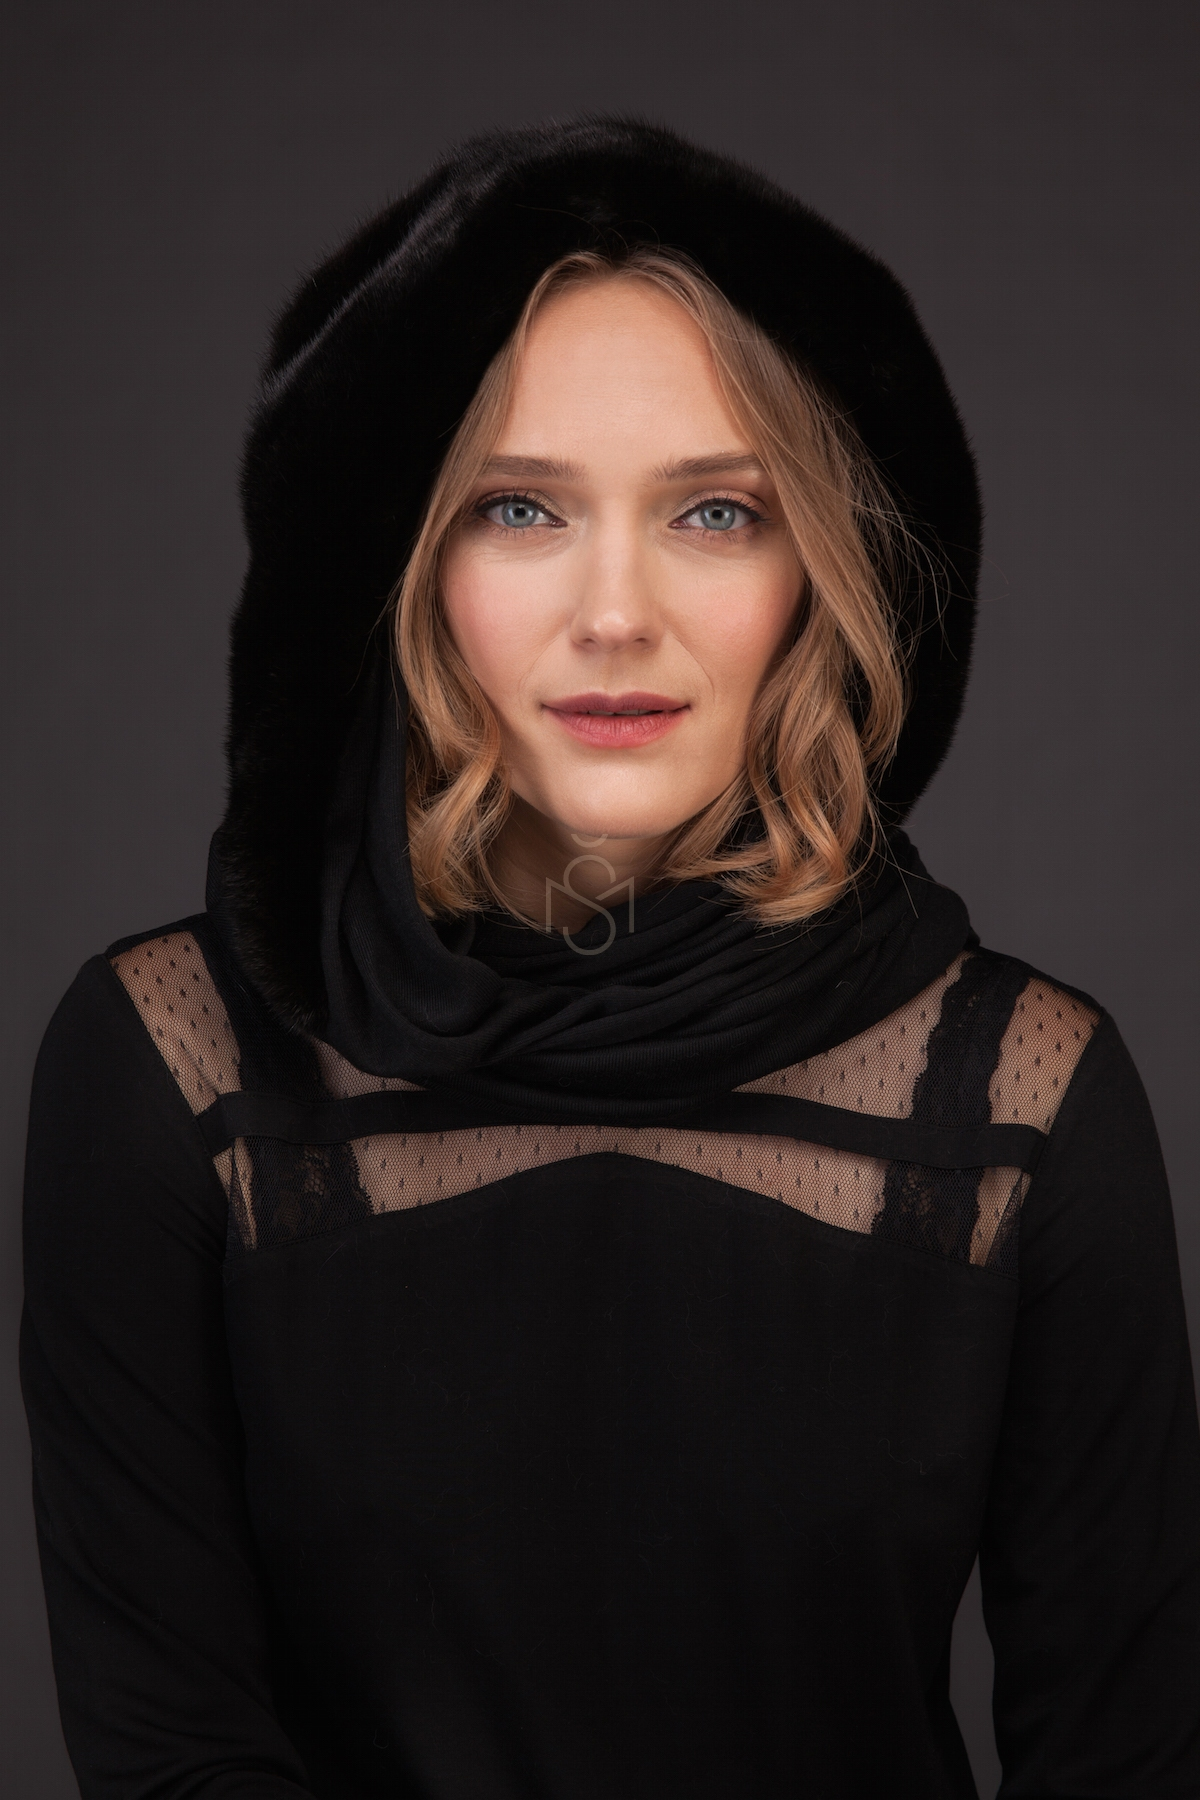 Mink fur shawl black color made by SILTA MADA fur studio in Vilnius